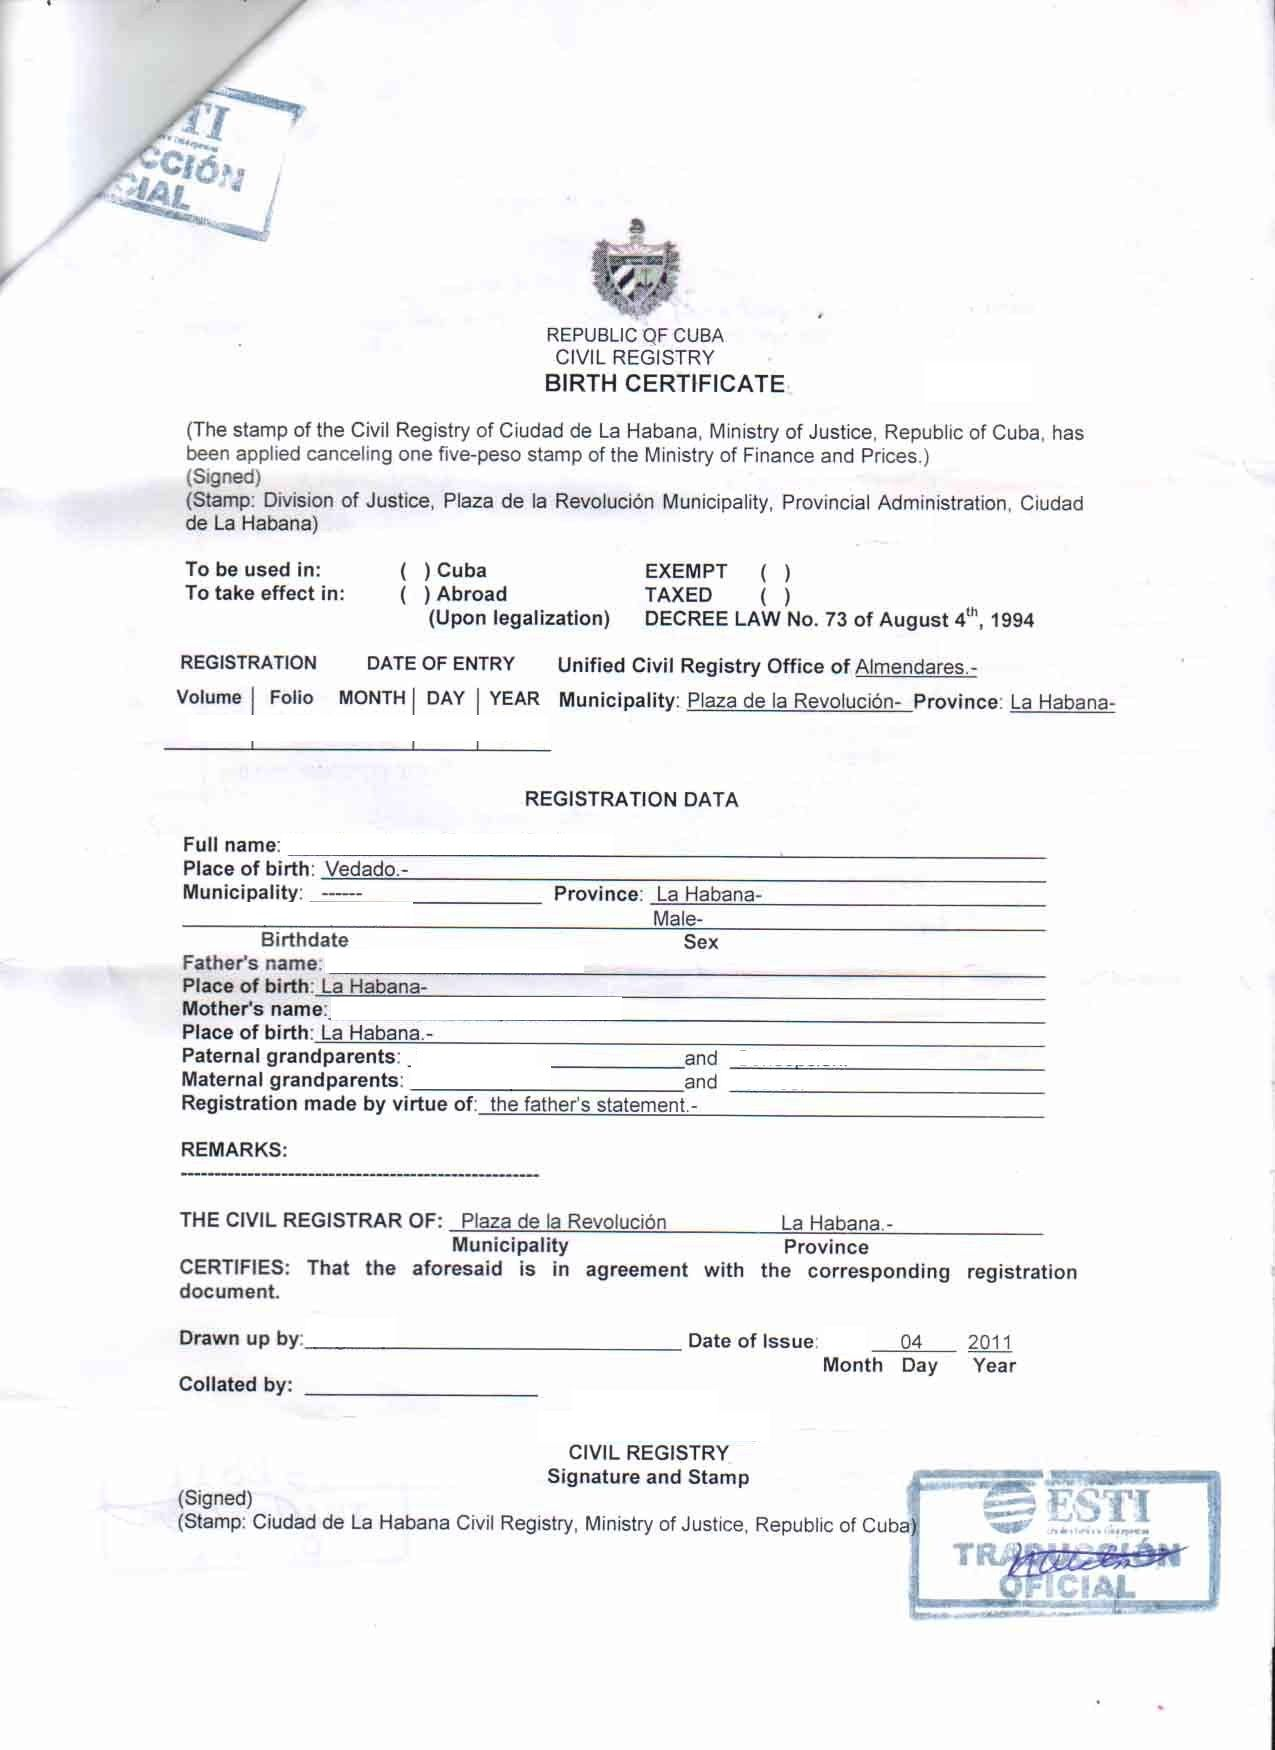 Marriage Certificate Translation Template Galleryhip The Birth